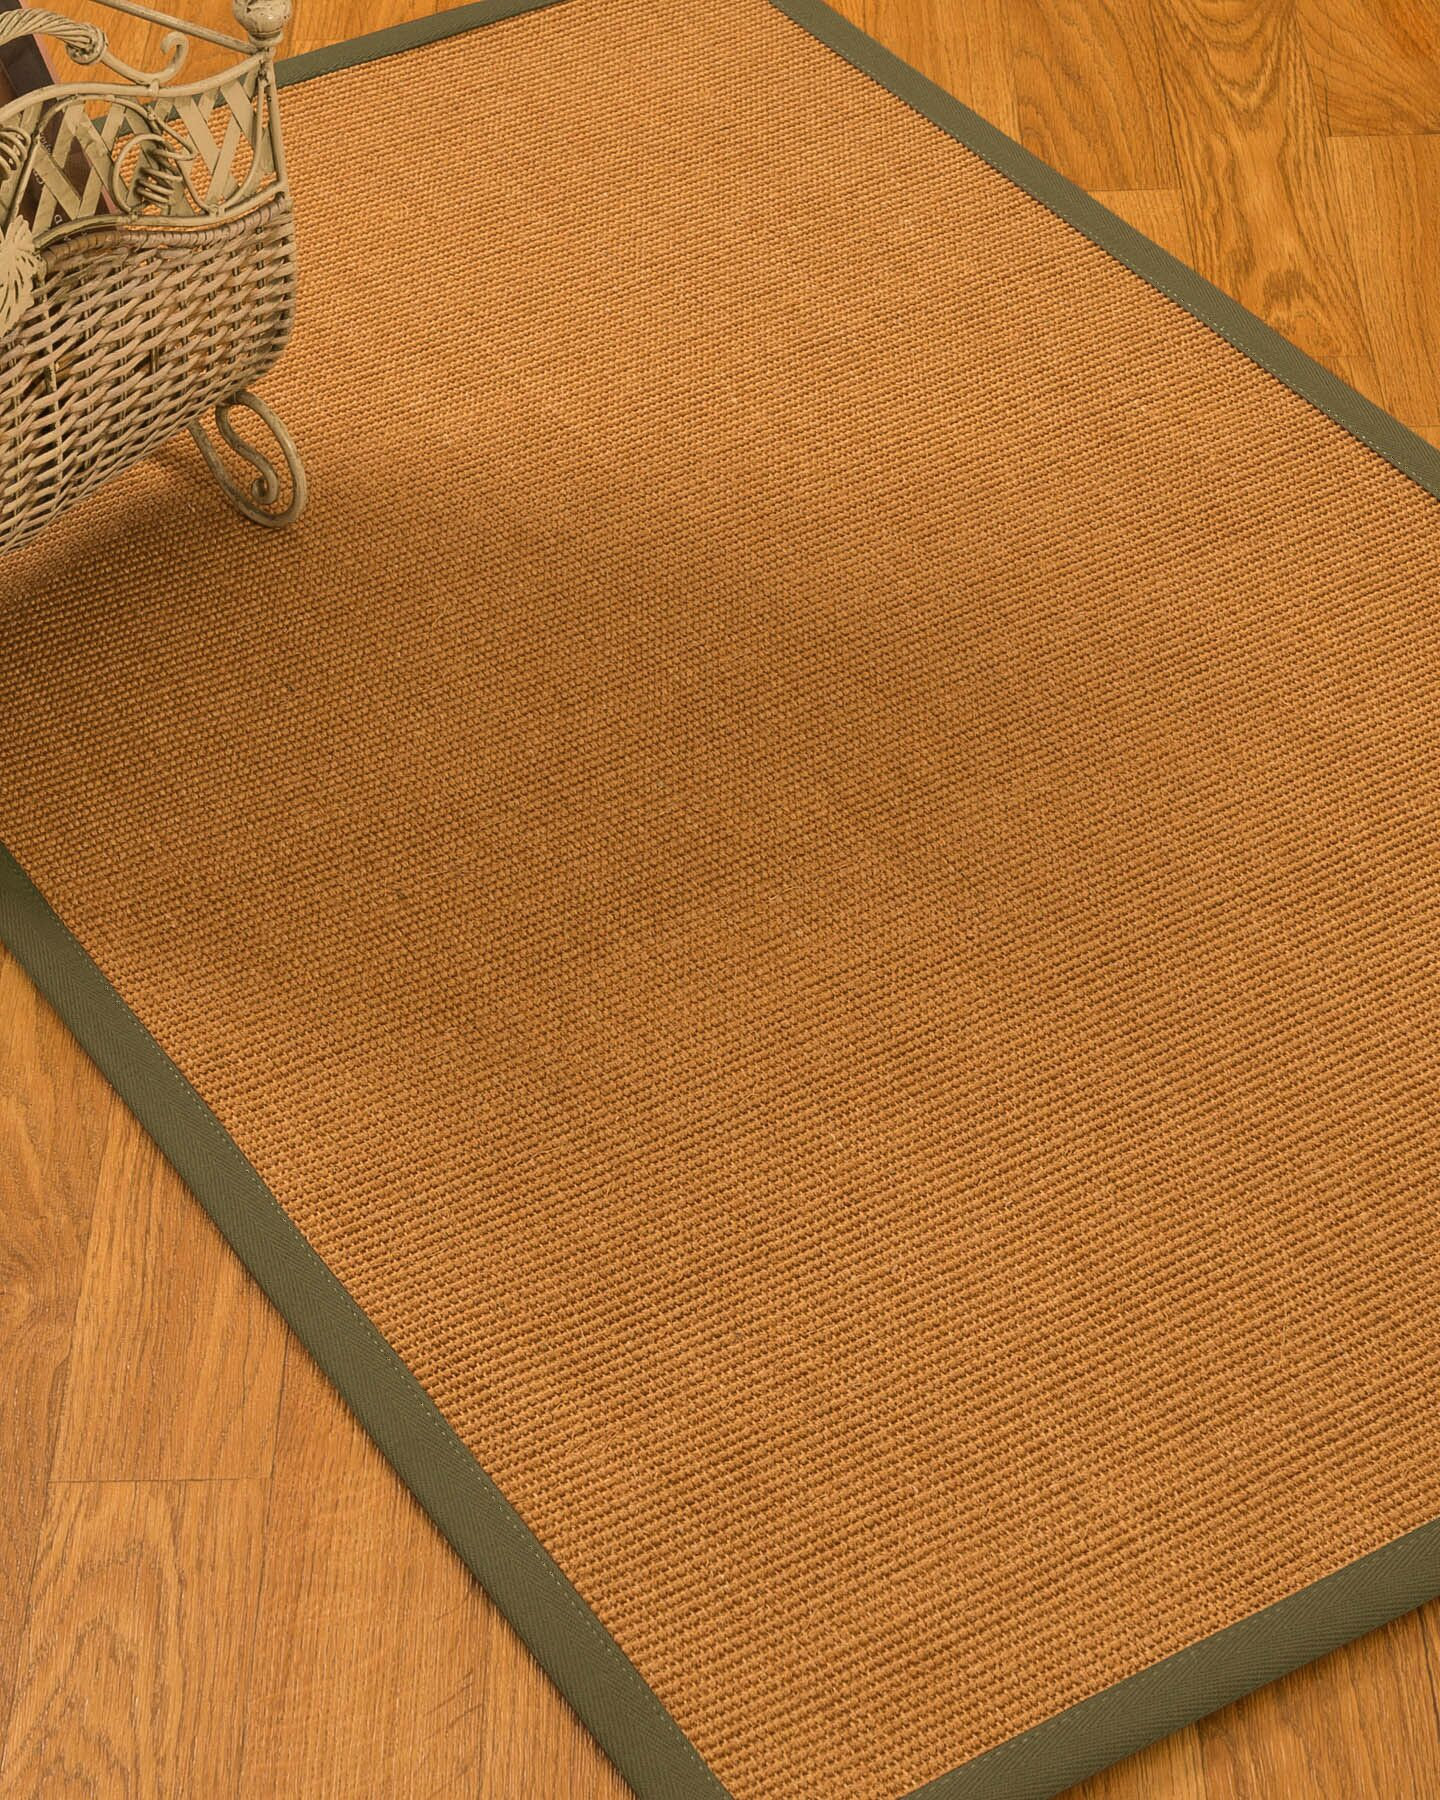 Kennell Border Hand-Woven Beige/Olive Area Rug Rug Size: Rectangle 9' x 12', Rug Pad Included: Yes